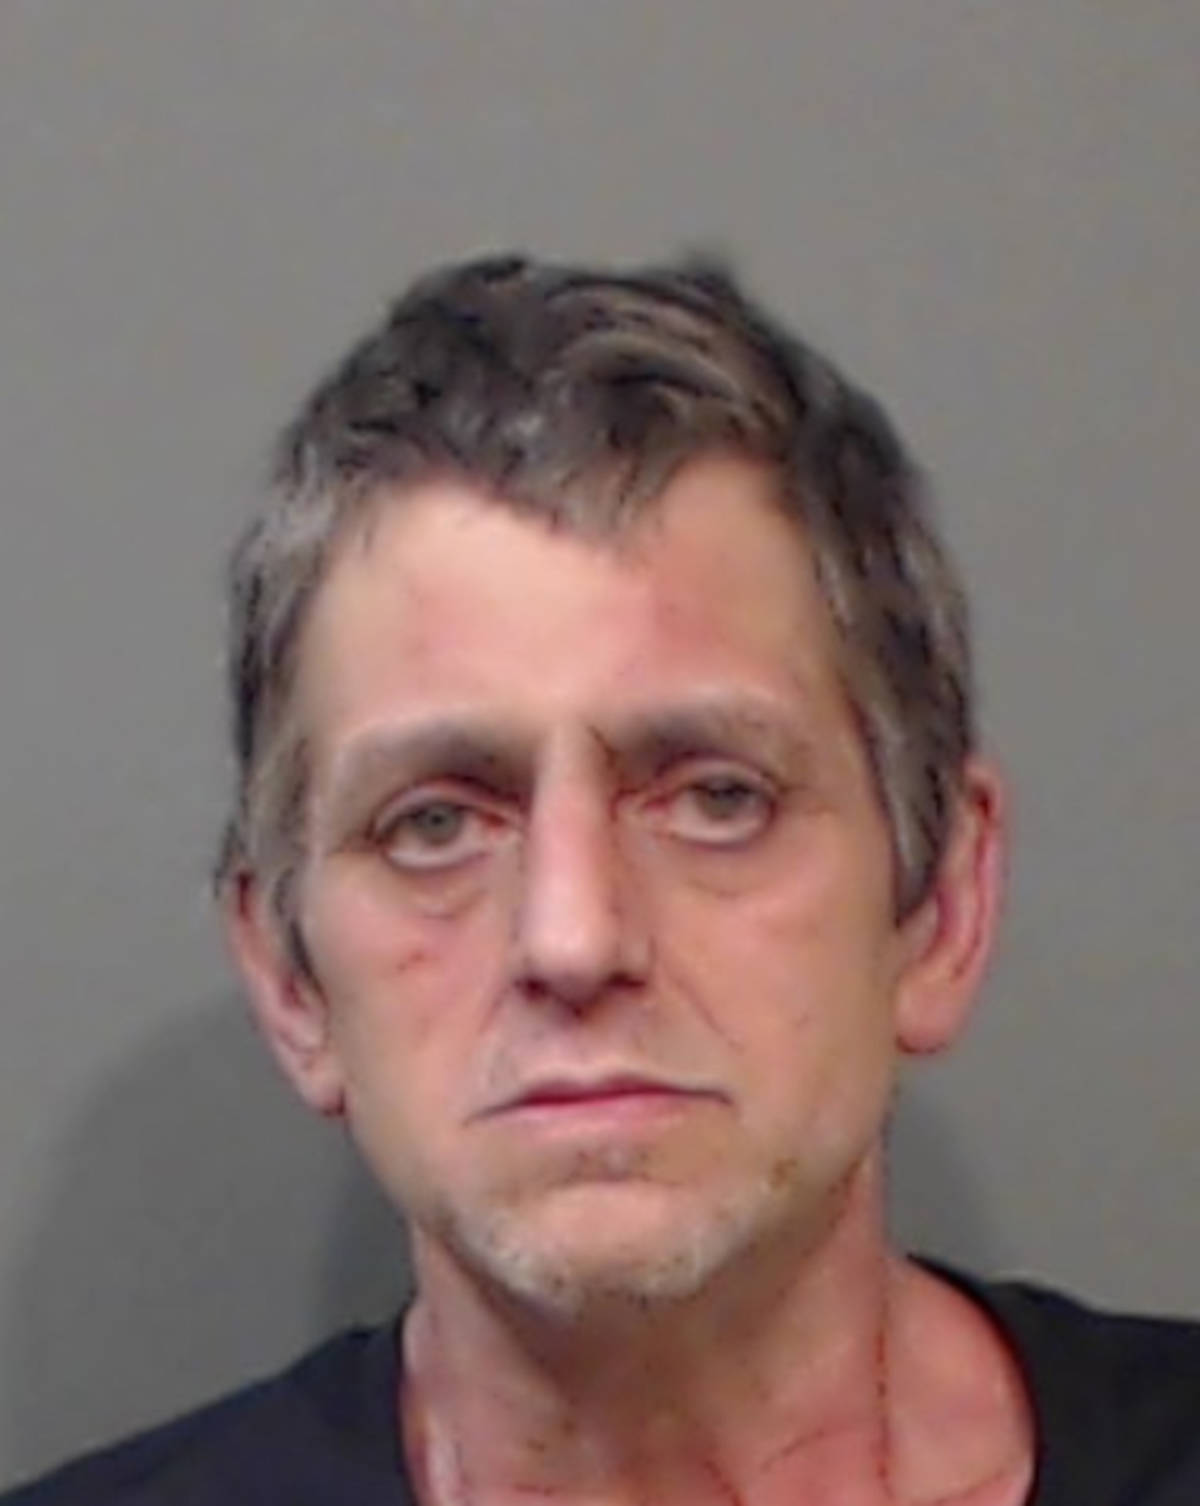 """Name: RUDOLPH, Gerald Age: 52 Height: 5'8"""" ft Weight: 201 lbs Hair: Brown Eyes: Blue Wanted: Breach of Undertaking or Recognizance Warrant in effect: May 9, 2021 Parole Jurisdiction: Chilliwack, BC"""